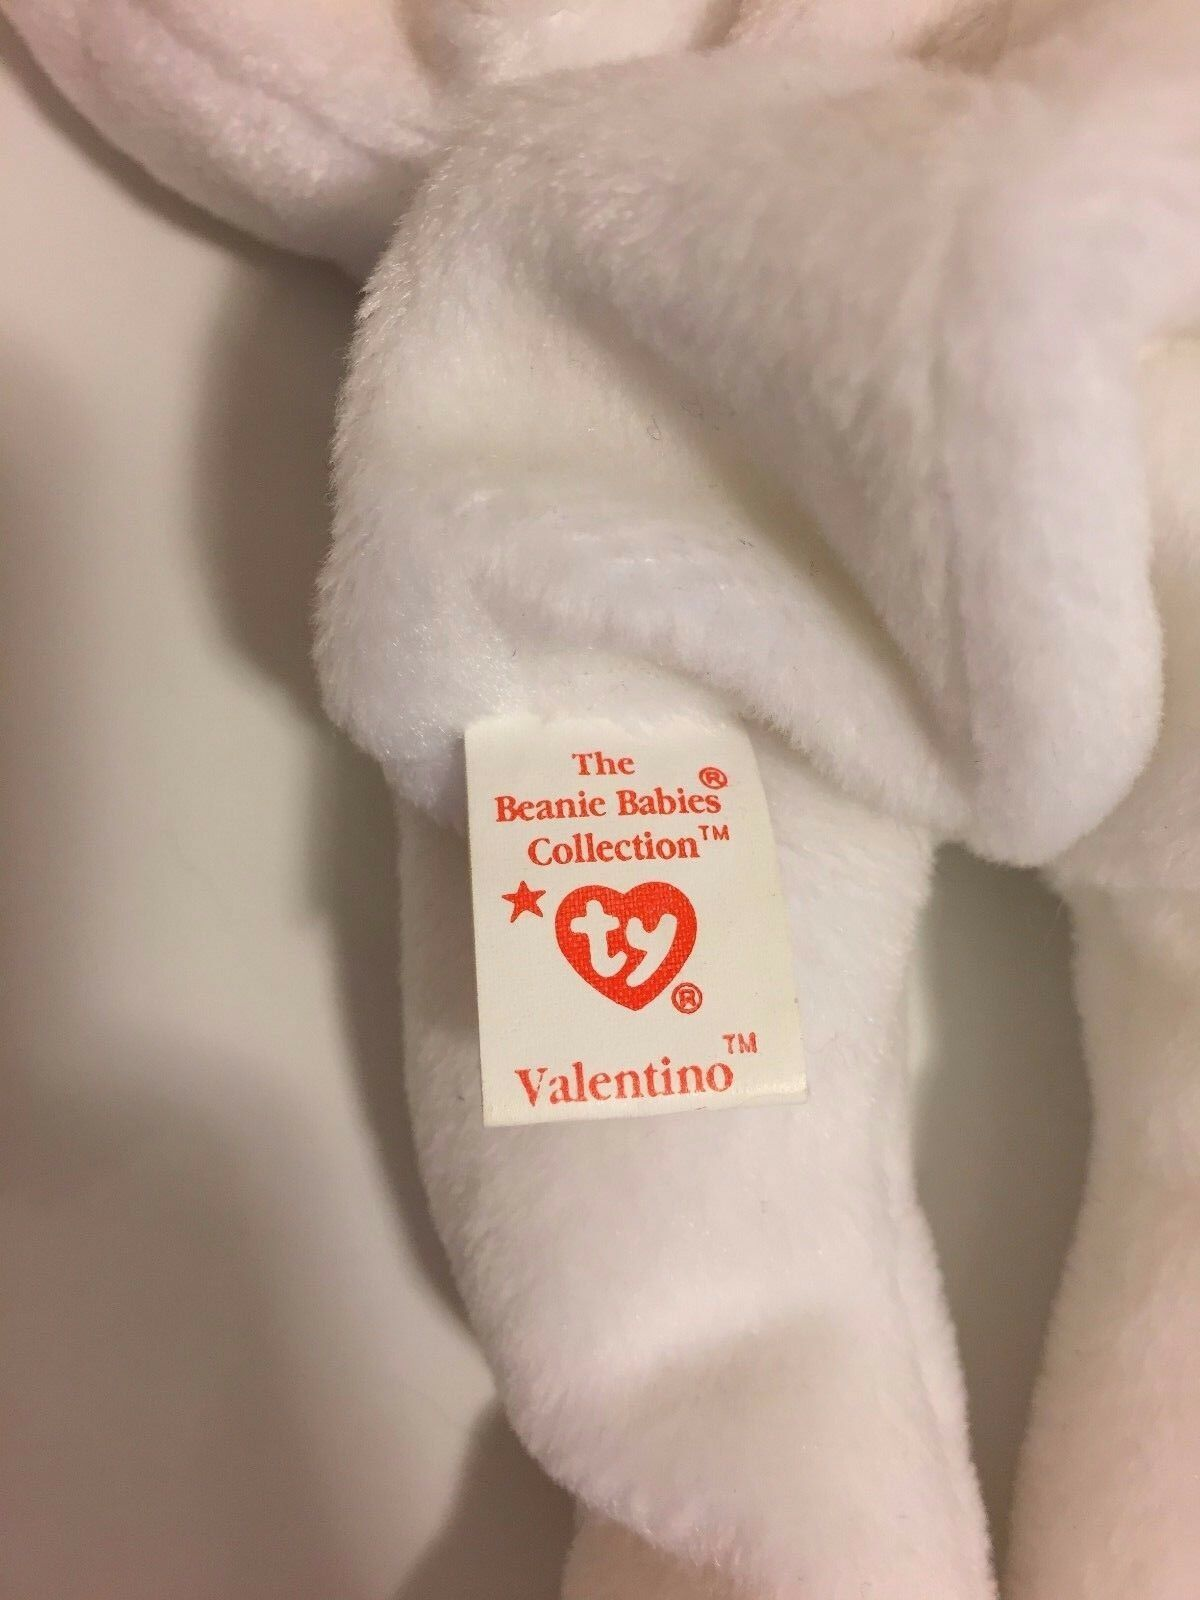 RARE Valentino Beanie Baby with Multiple Errors PVC Brown Brown Brown Nose 7d97b5